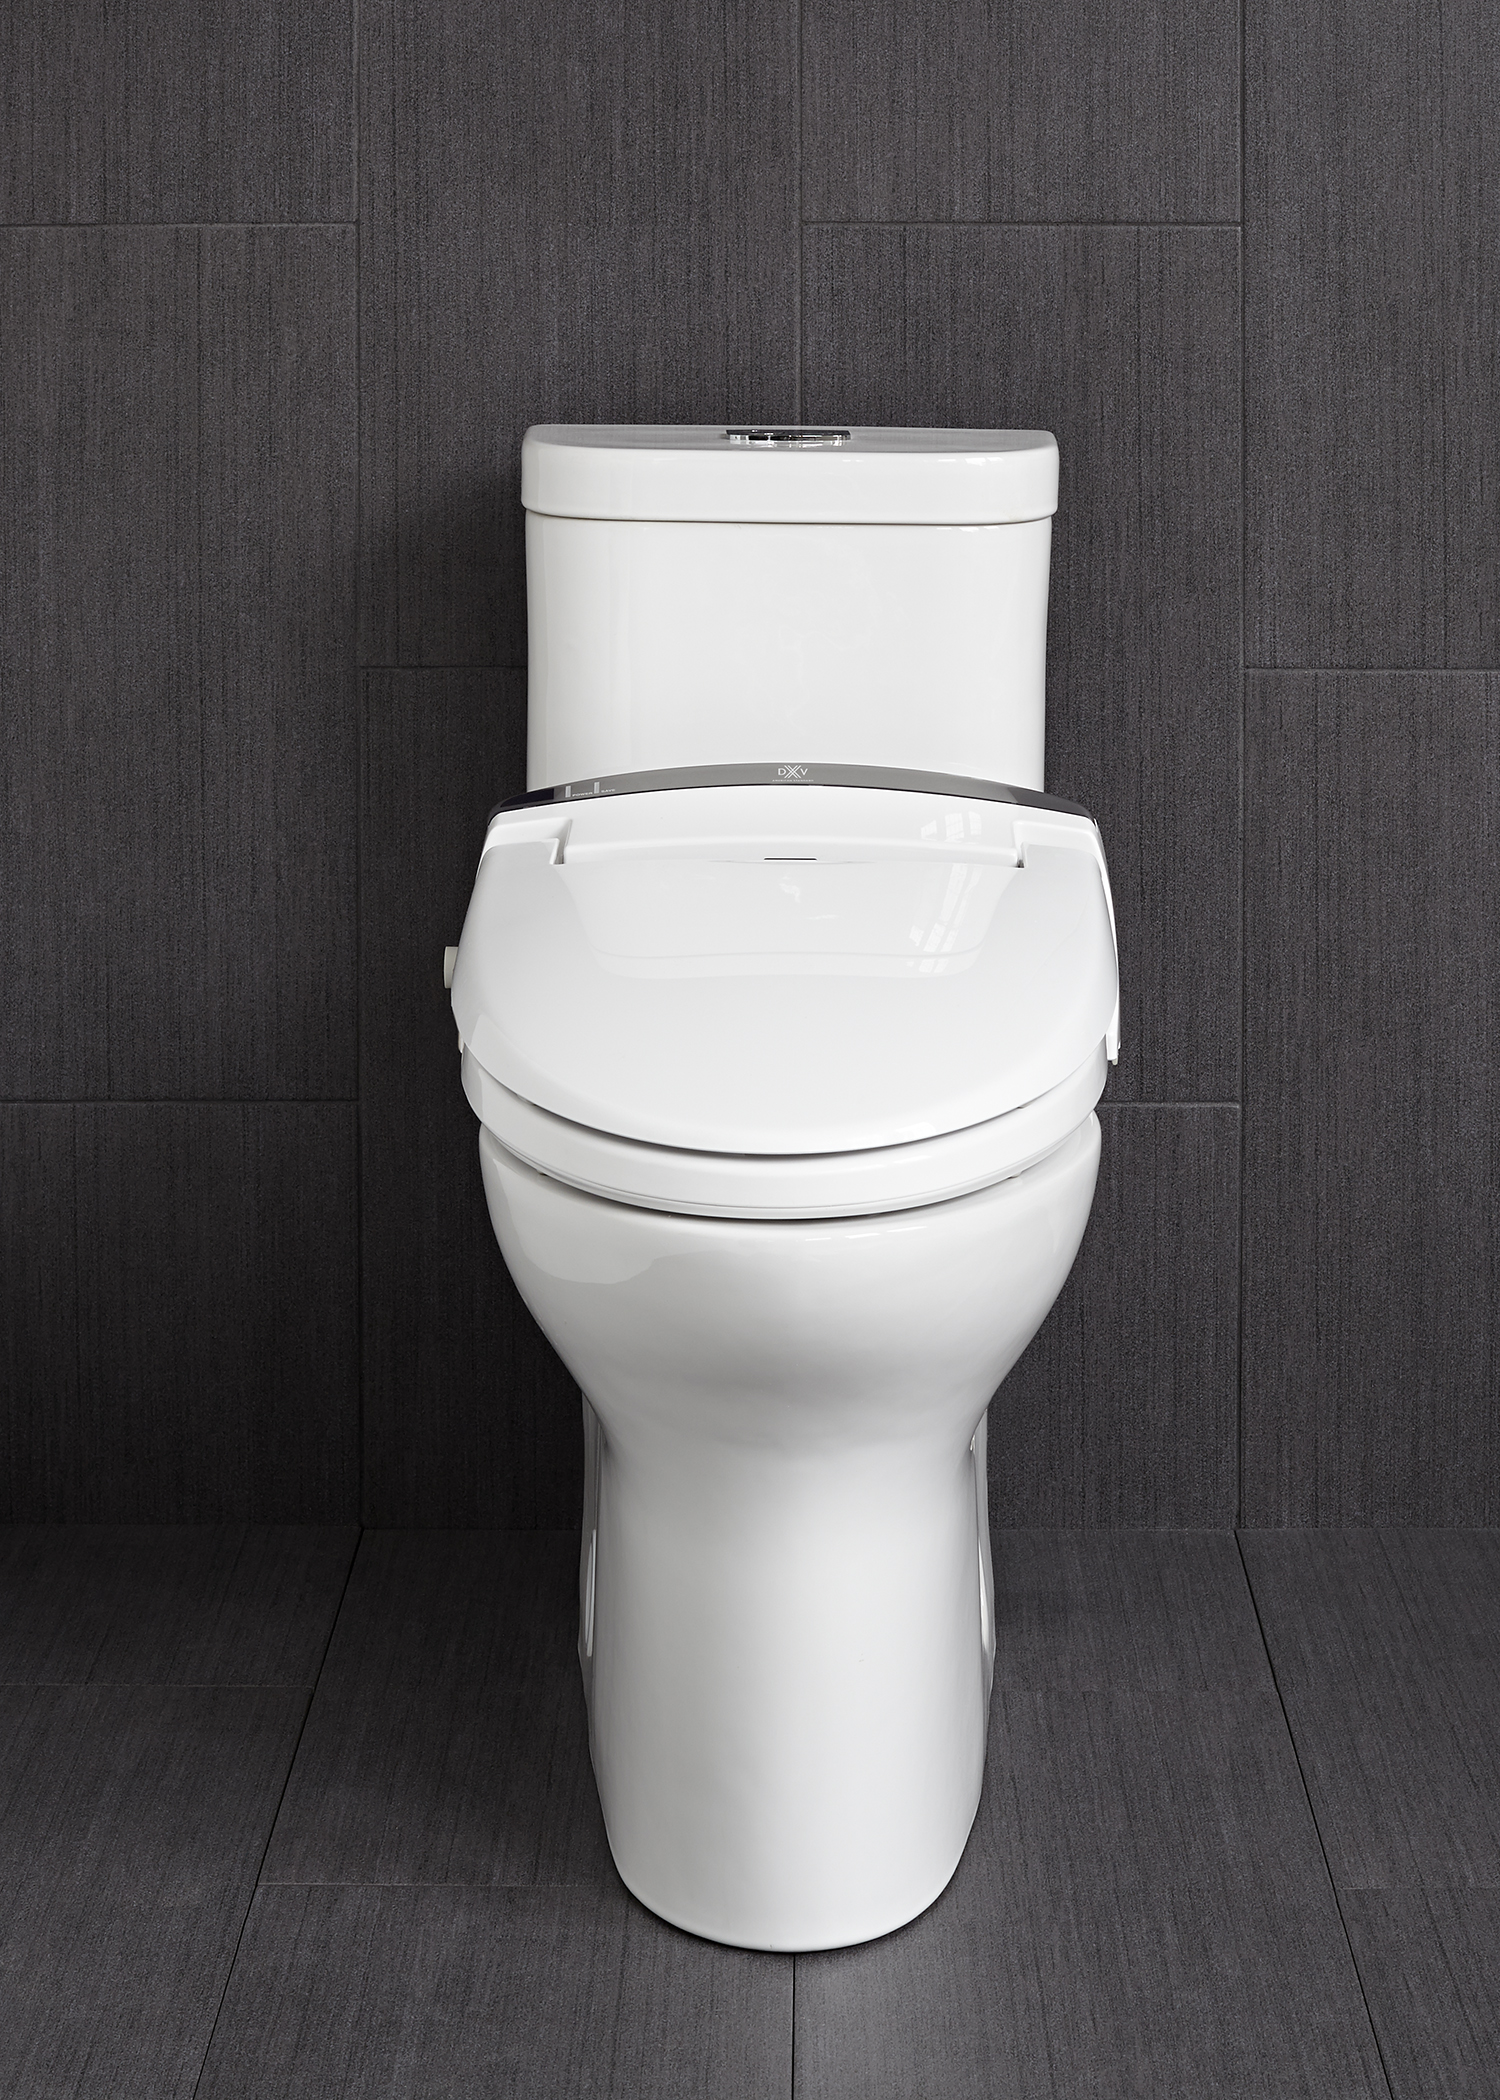 The AT200 Smart Toilet from DXV